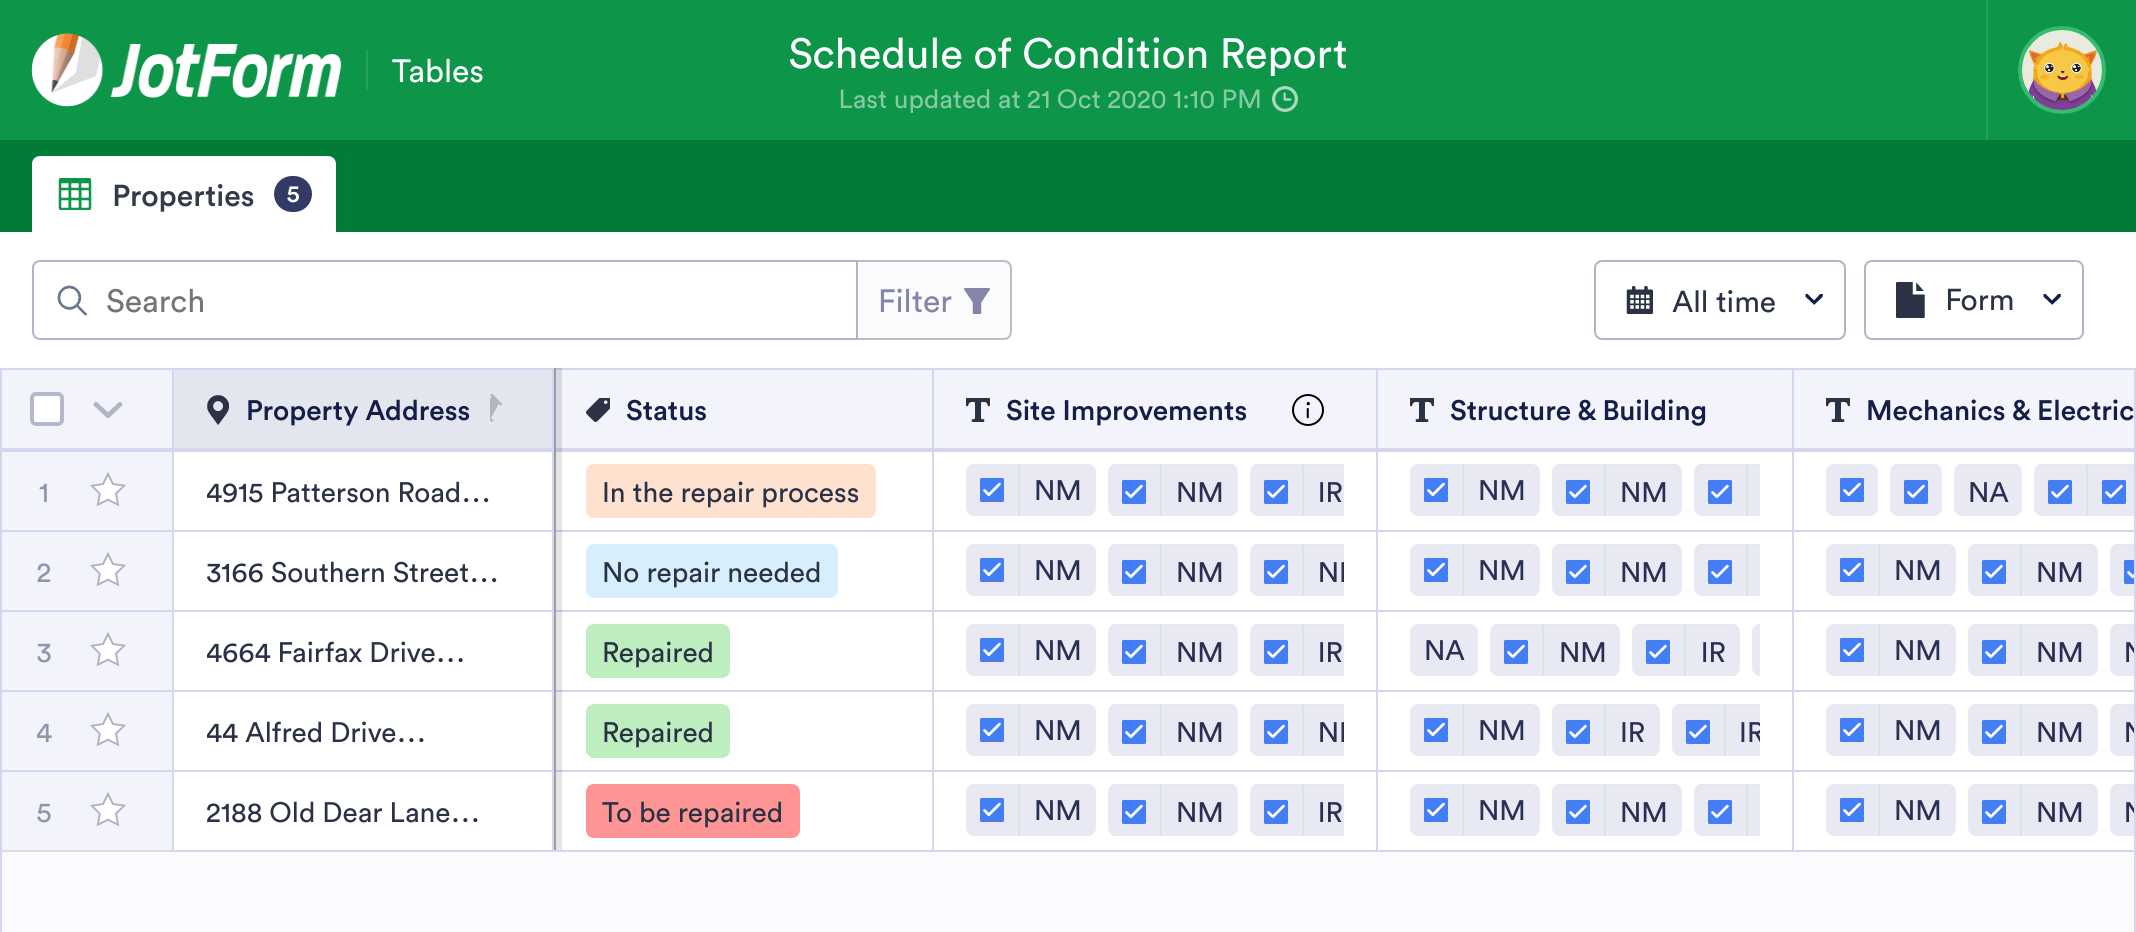 Schedule of Condition Report